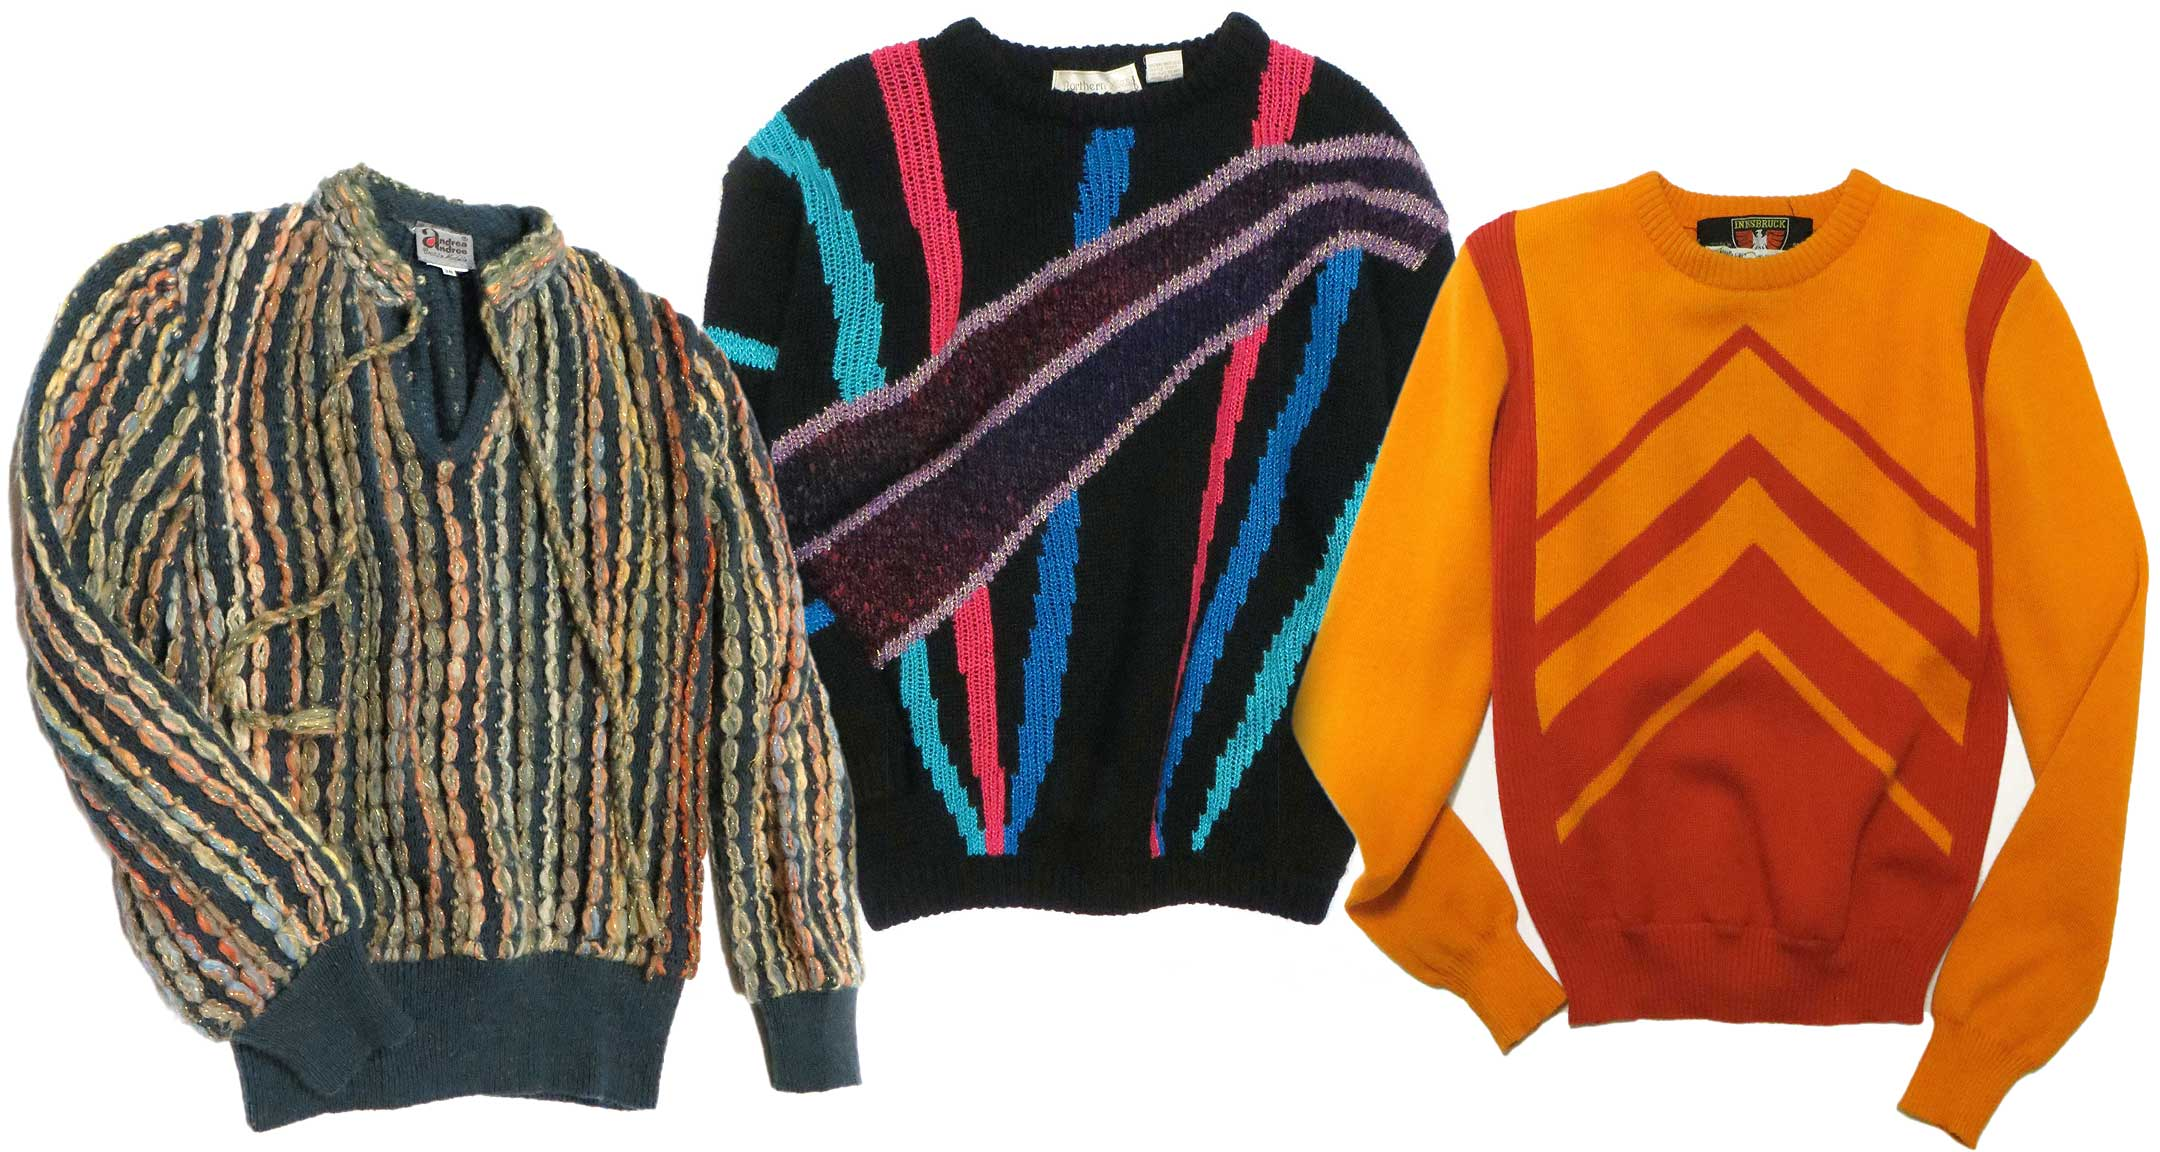 '80s Knits